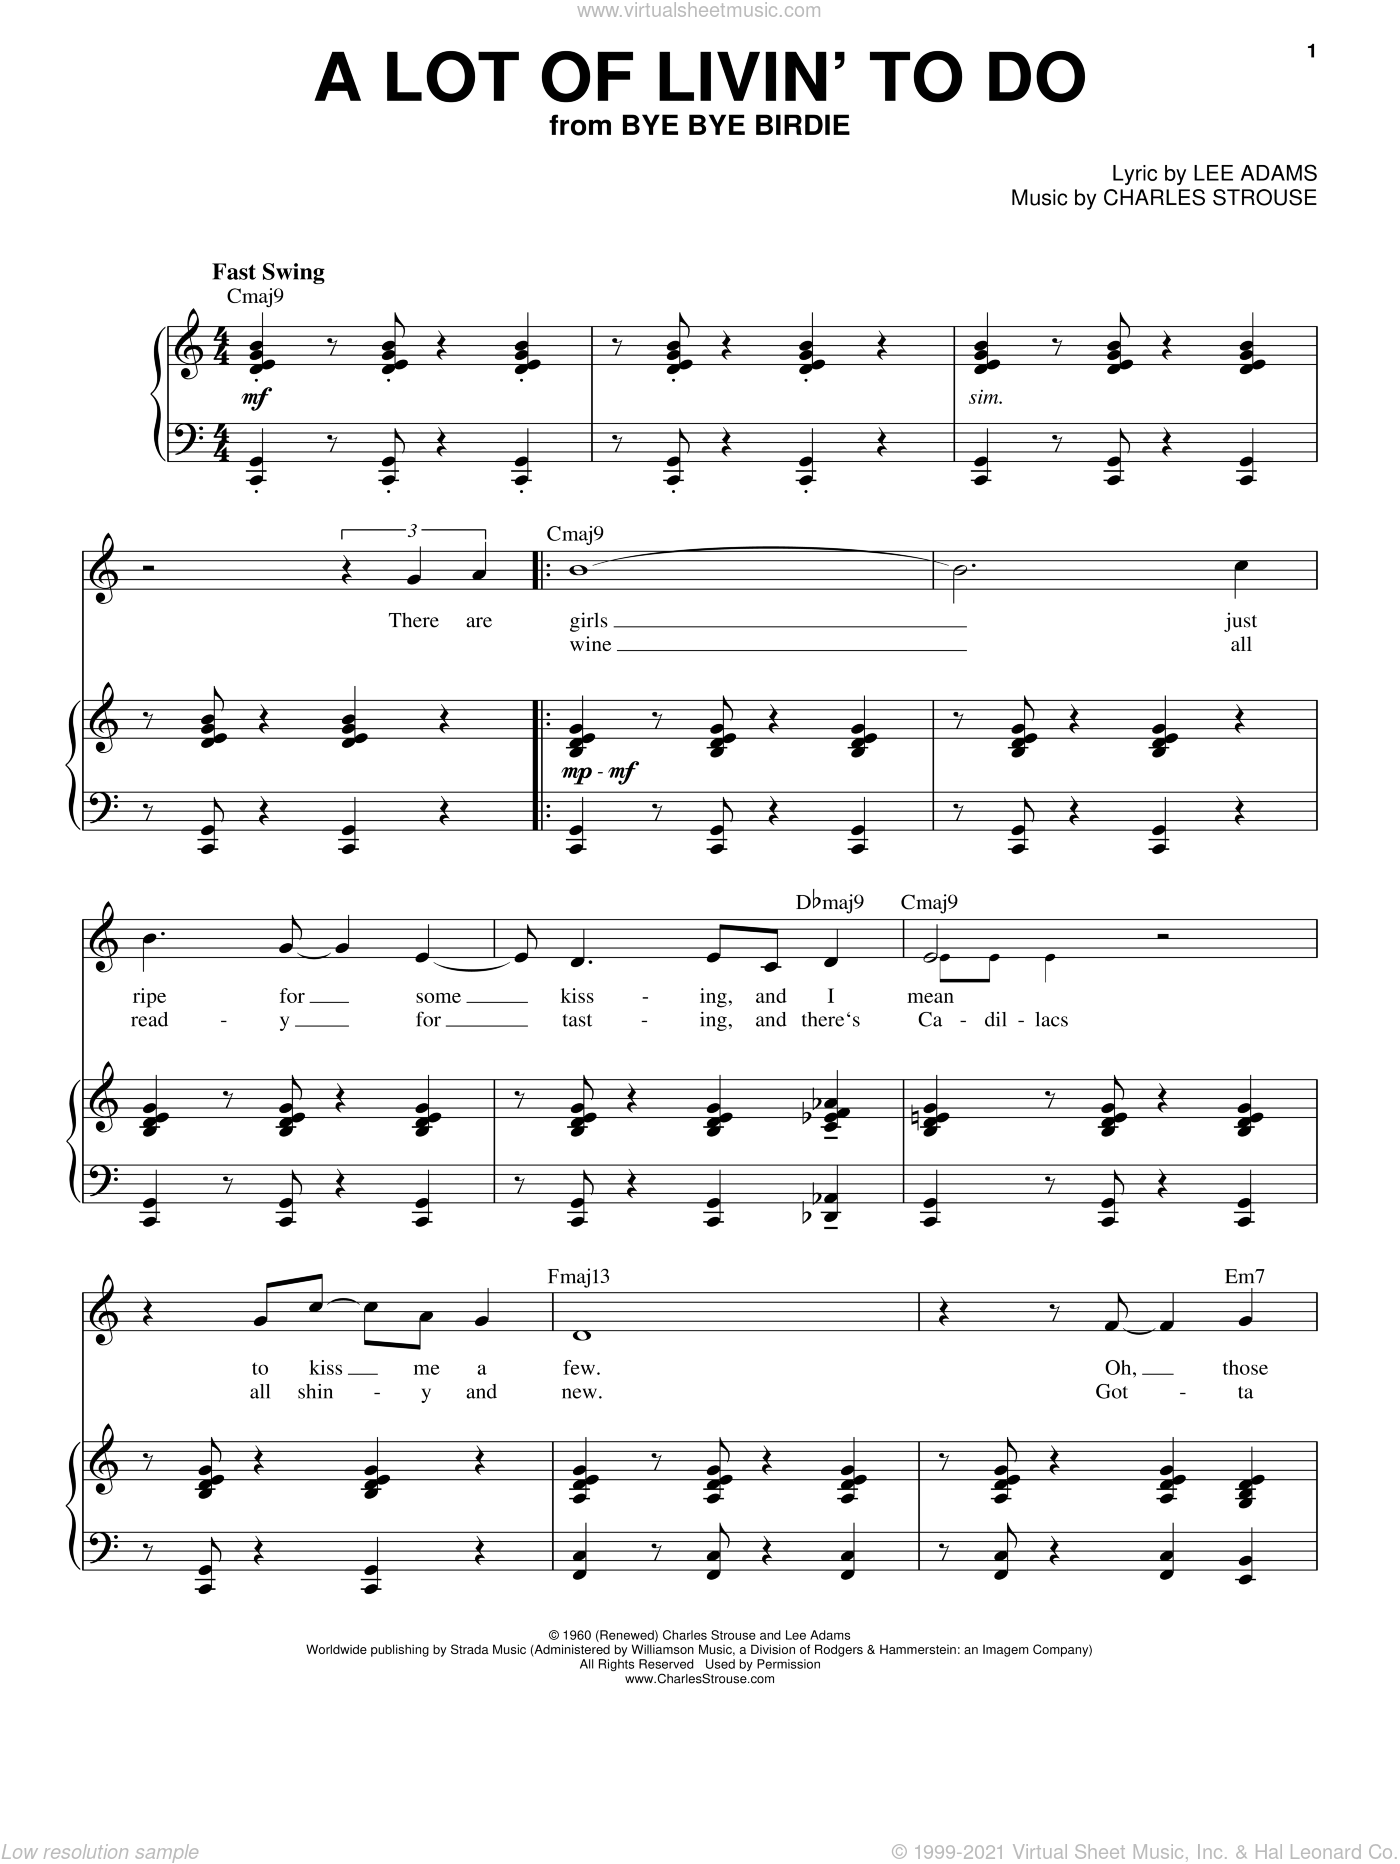 A Lot Of Livin' To Do sheet music for voice and piano by Sammy Davis, Jr., Bryan Adams, Dean Martin, Frank Sinatra, Charles Strouse and Lee Adams, intermediate skill level